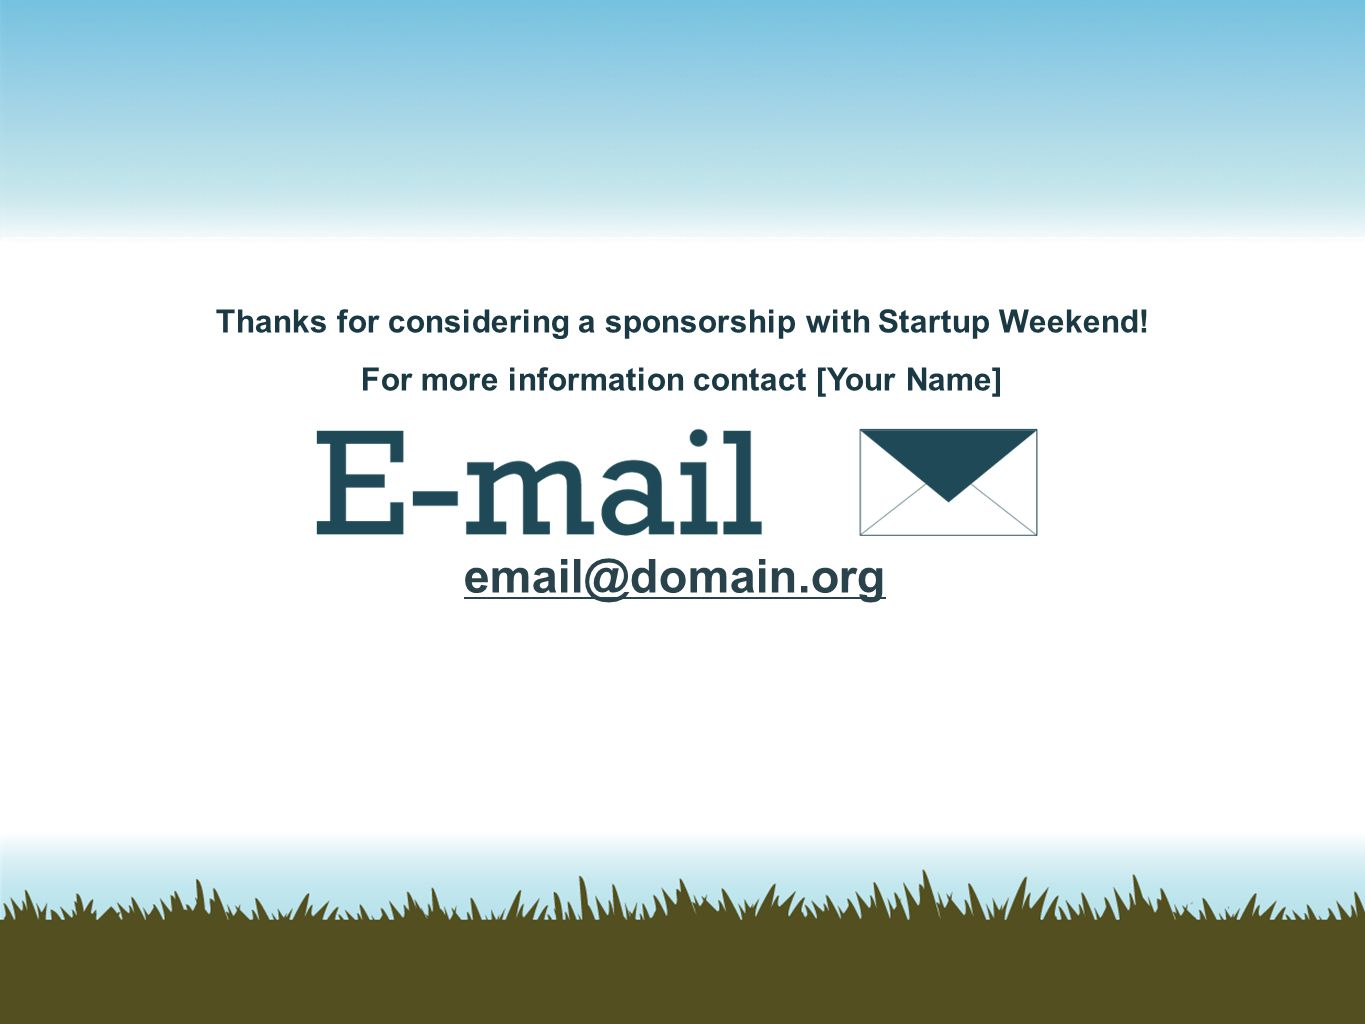 Thanks for considering a sponsorship with Startup Weekend!